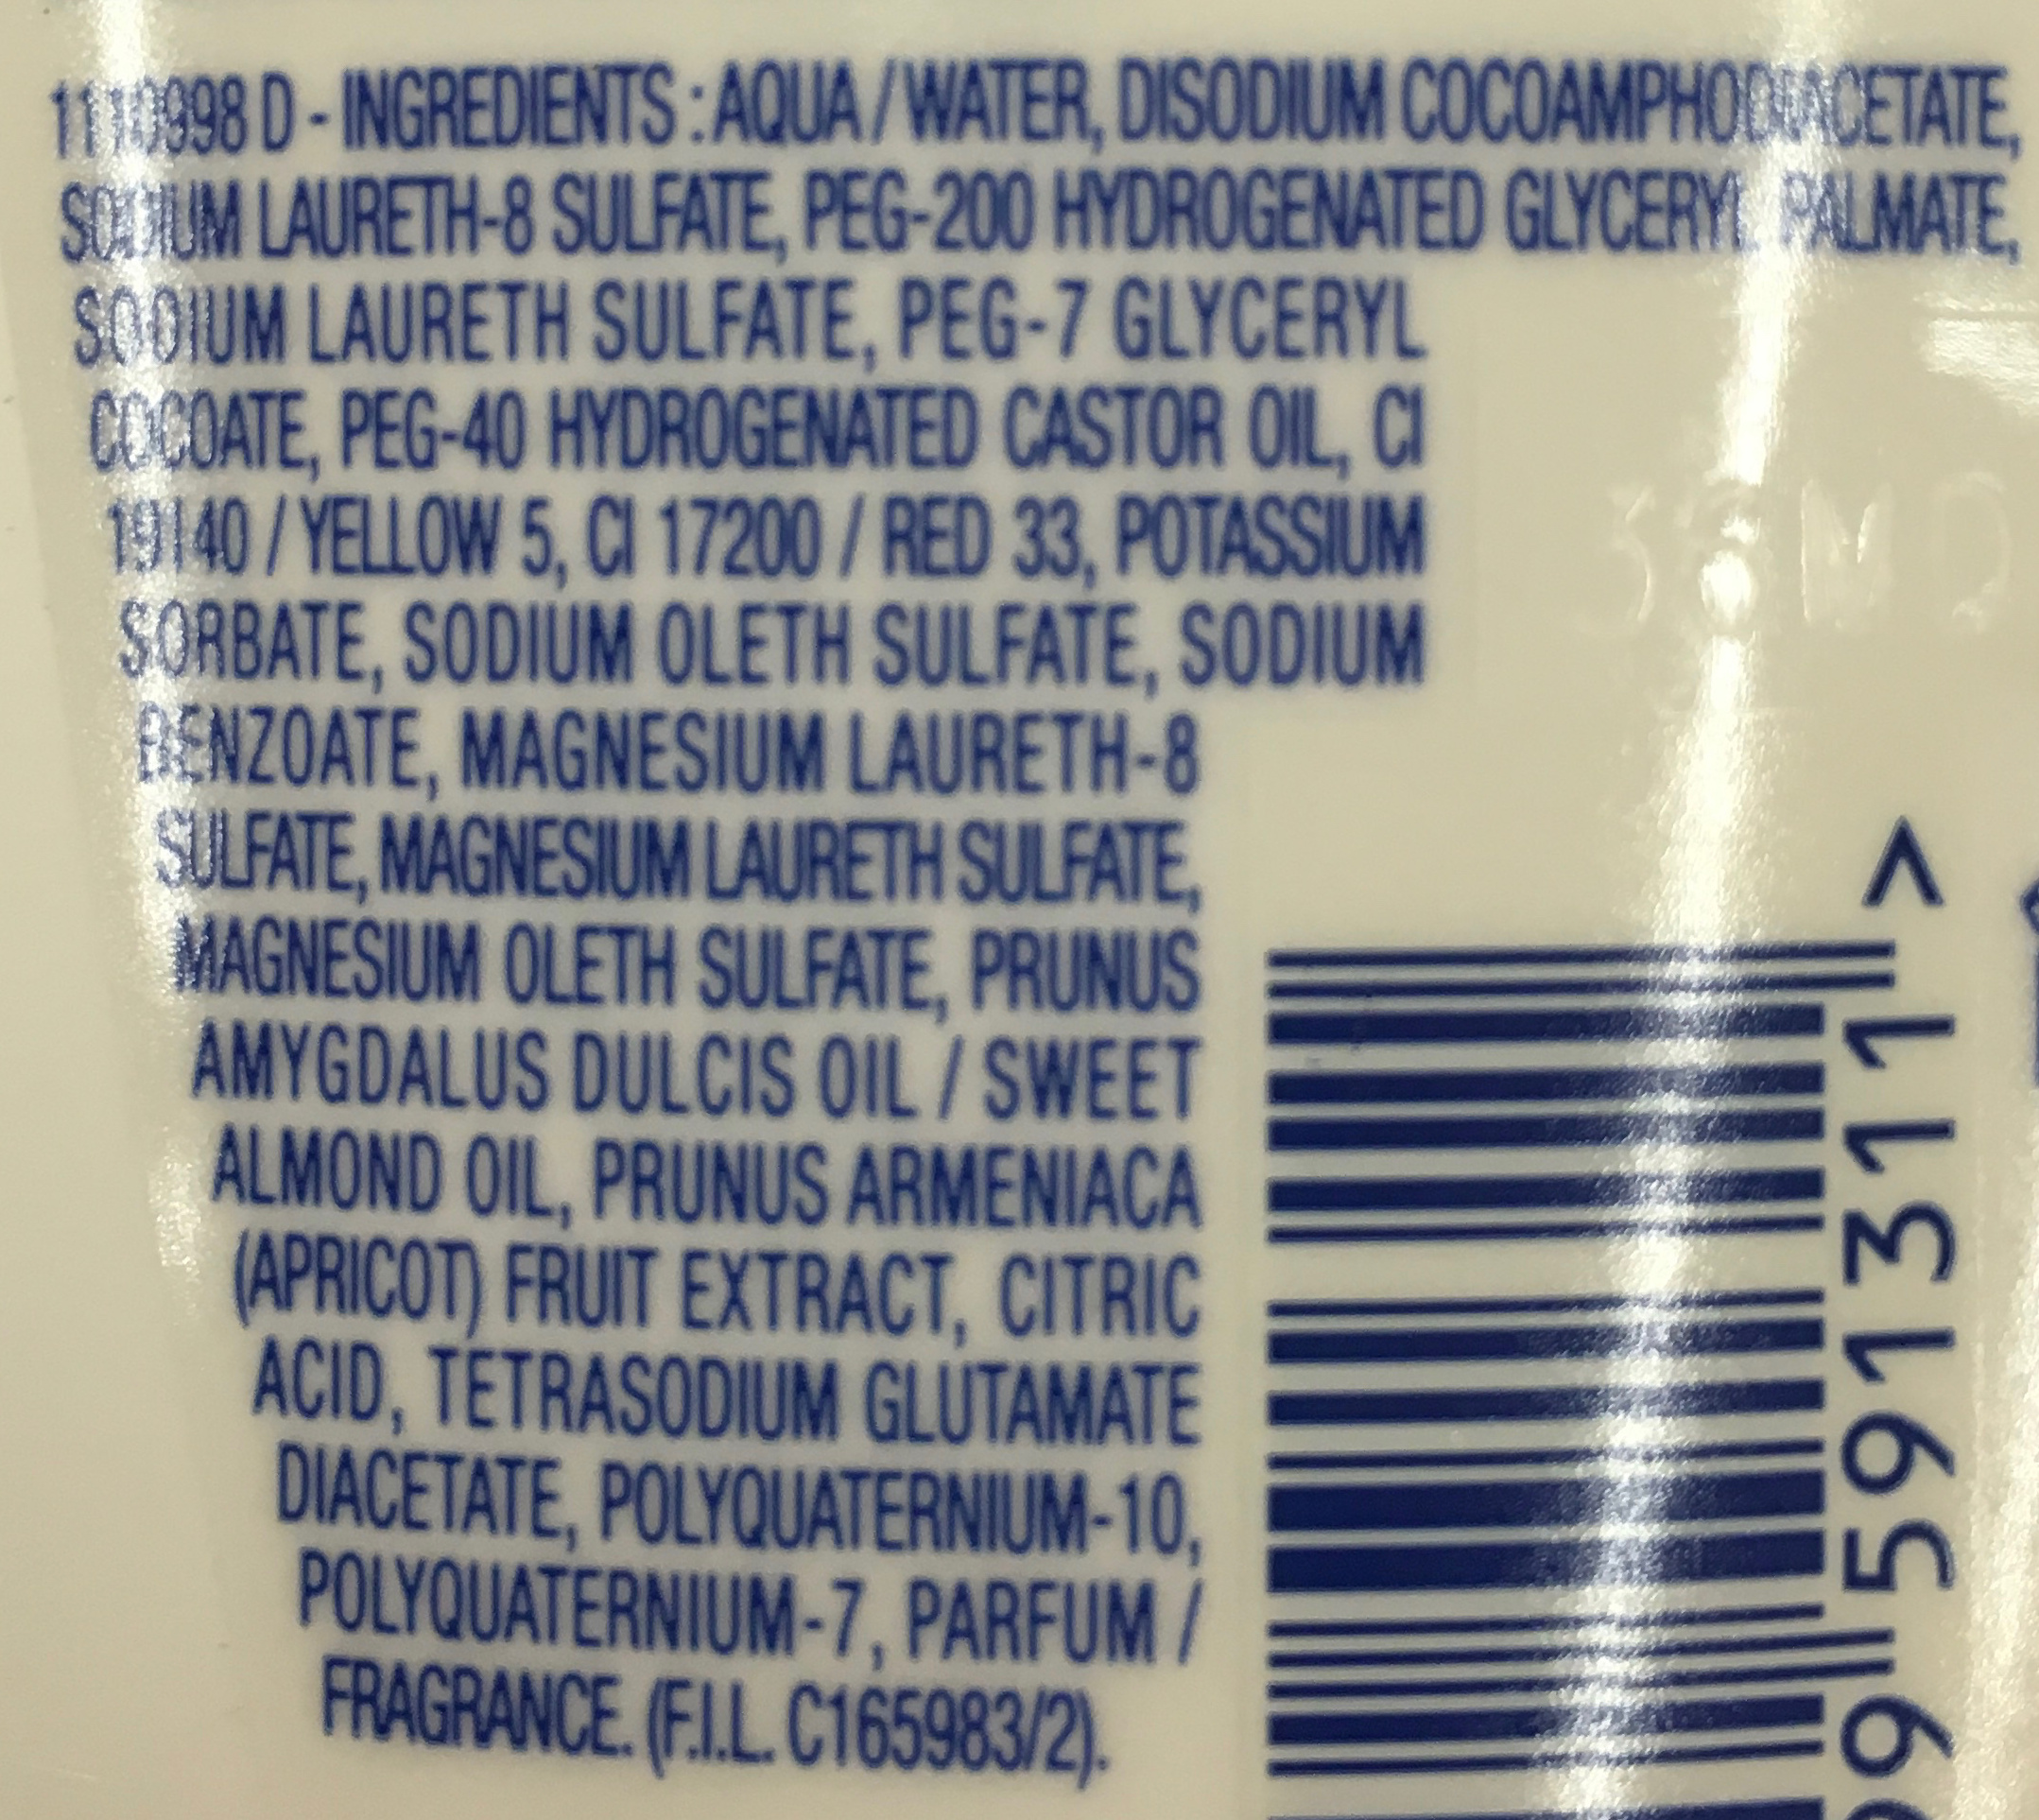 Shampooing 2 en 1 ultra démêlant - Ingredients - fr